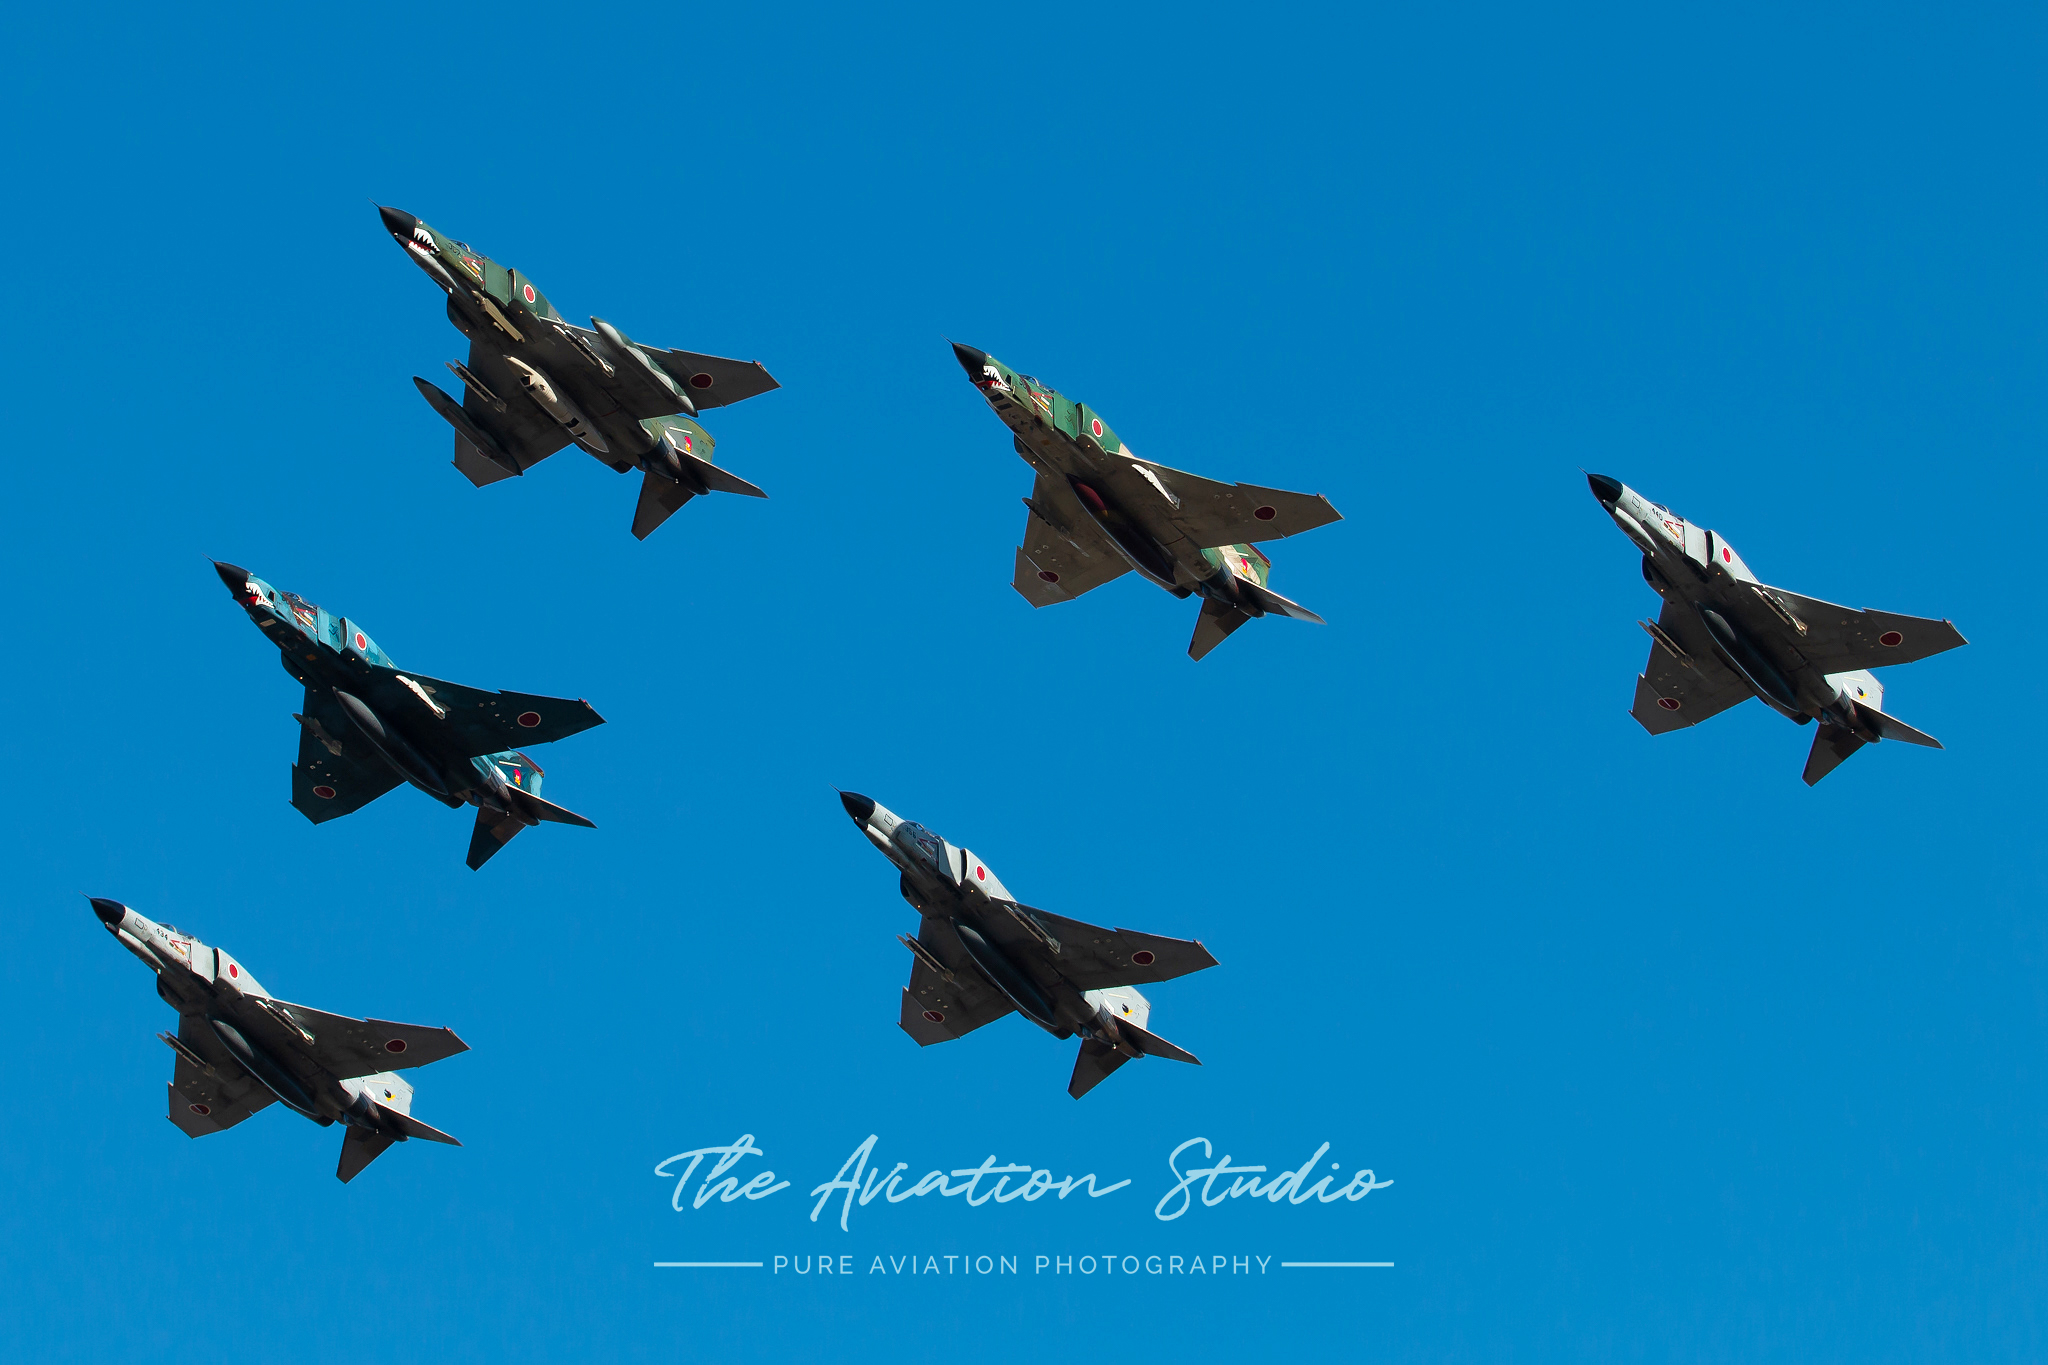 A six-ship F-4 Phantom formation flyover at the Hyakuri Air Festival (Image: Brock Little)